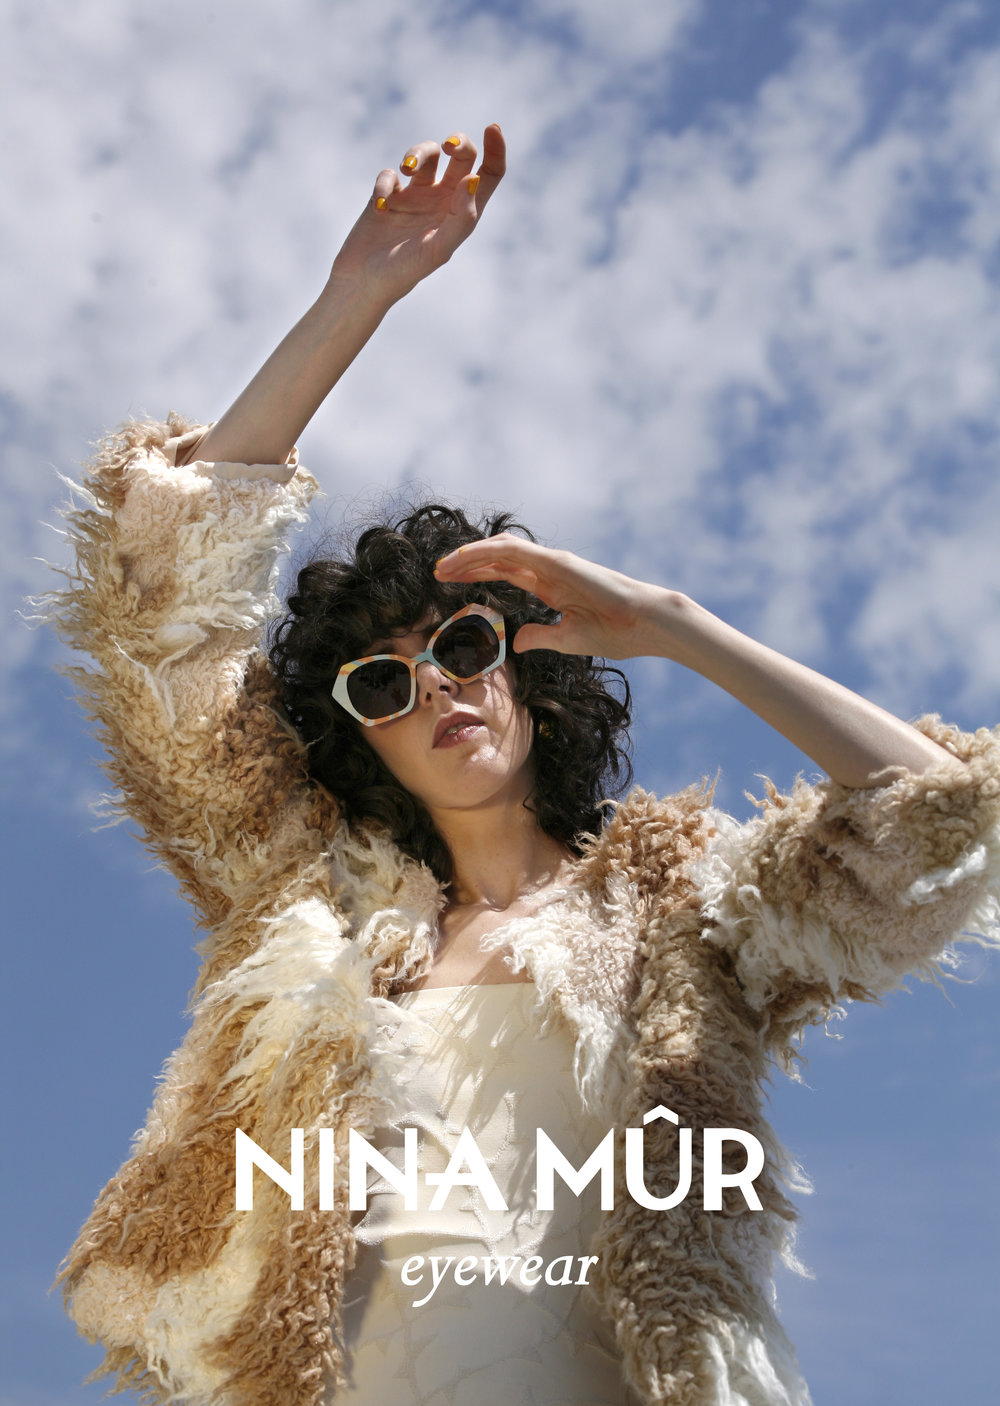 Copy of Nina Mur Eyewear — Art Direction